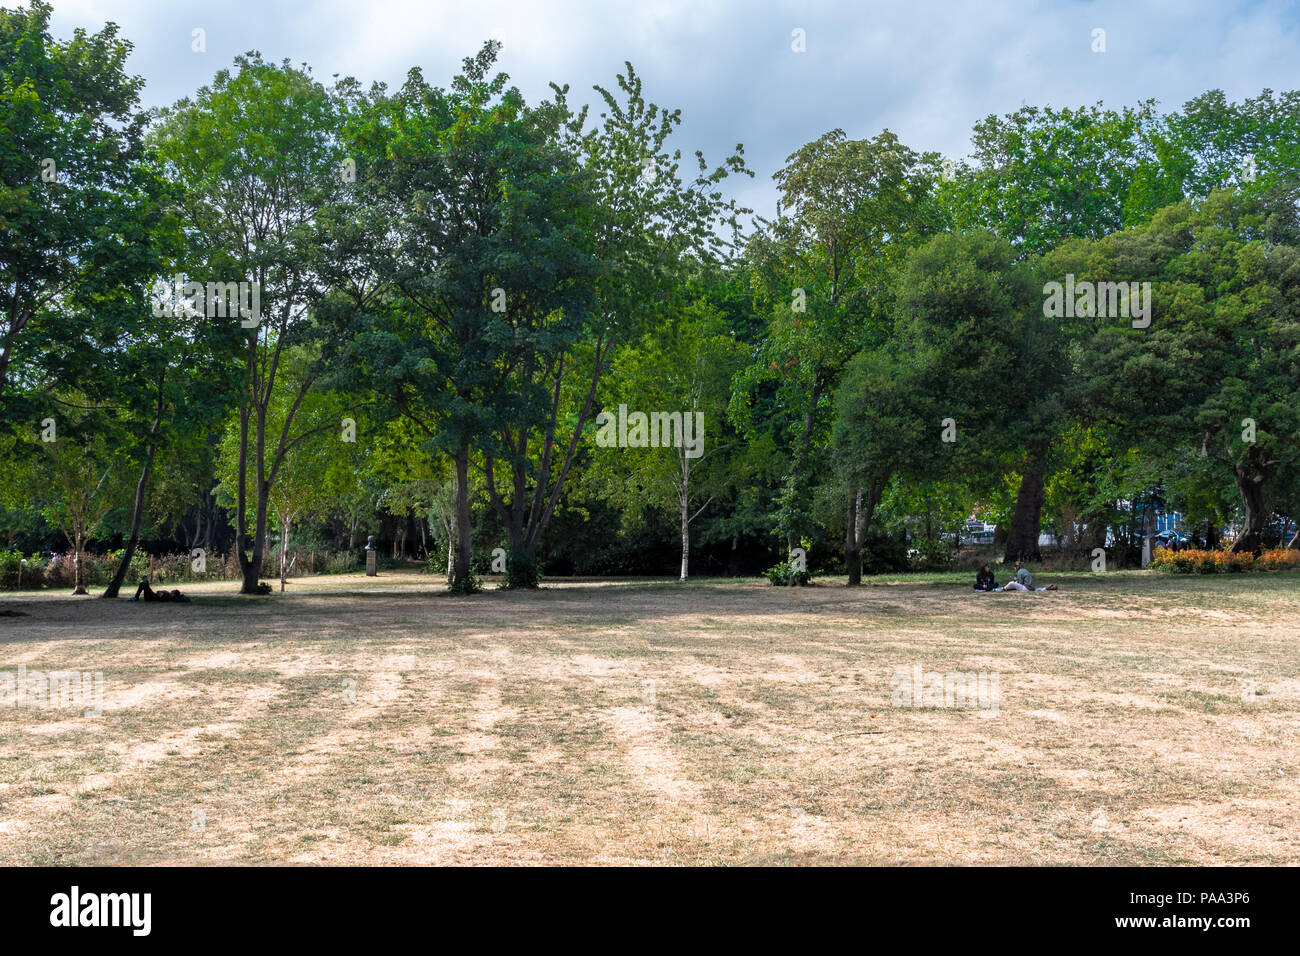 People relaxing in the shade at a Dublin City park on a hot summer day; the parched ground below reflects the dry summer. - Stock Image